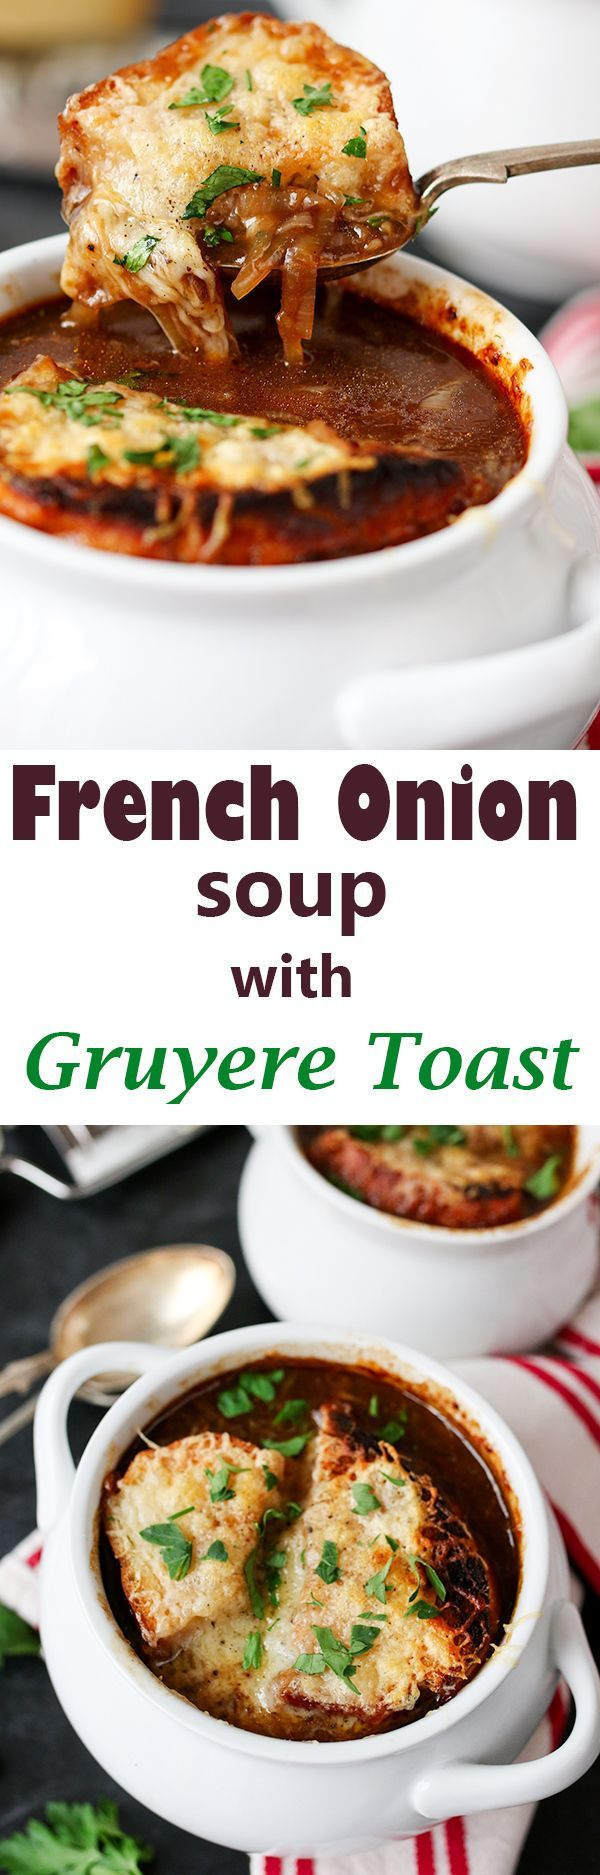 French Onion Soup with Gruyère Toast | Recipe | Toast, Onions and ...